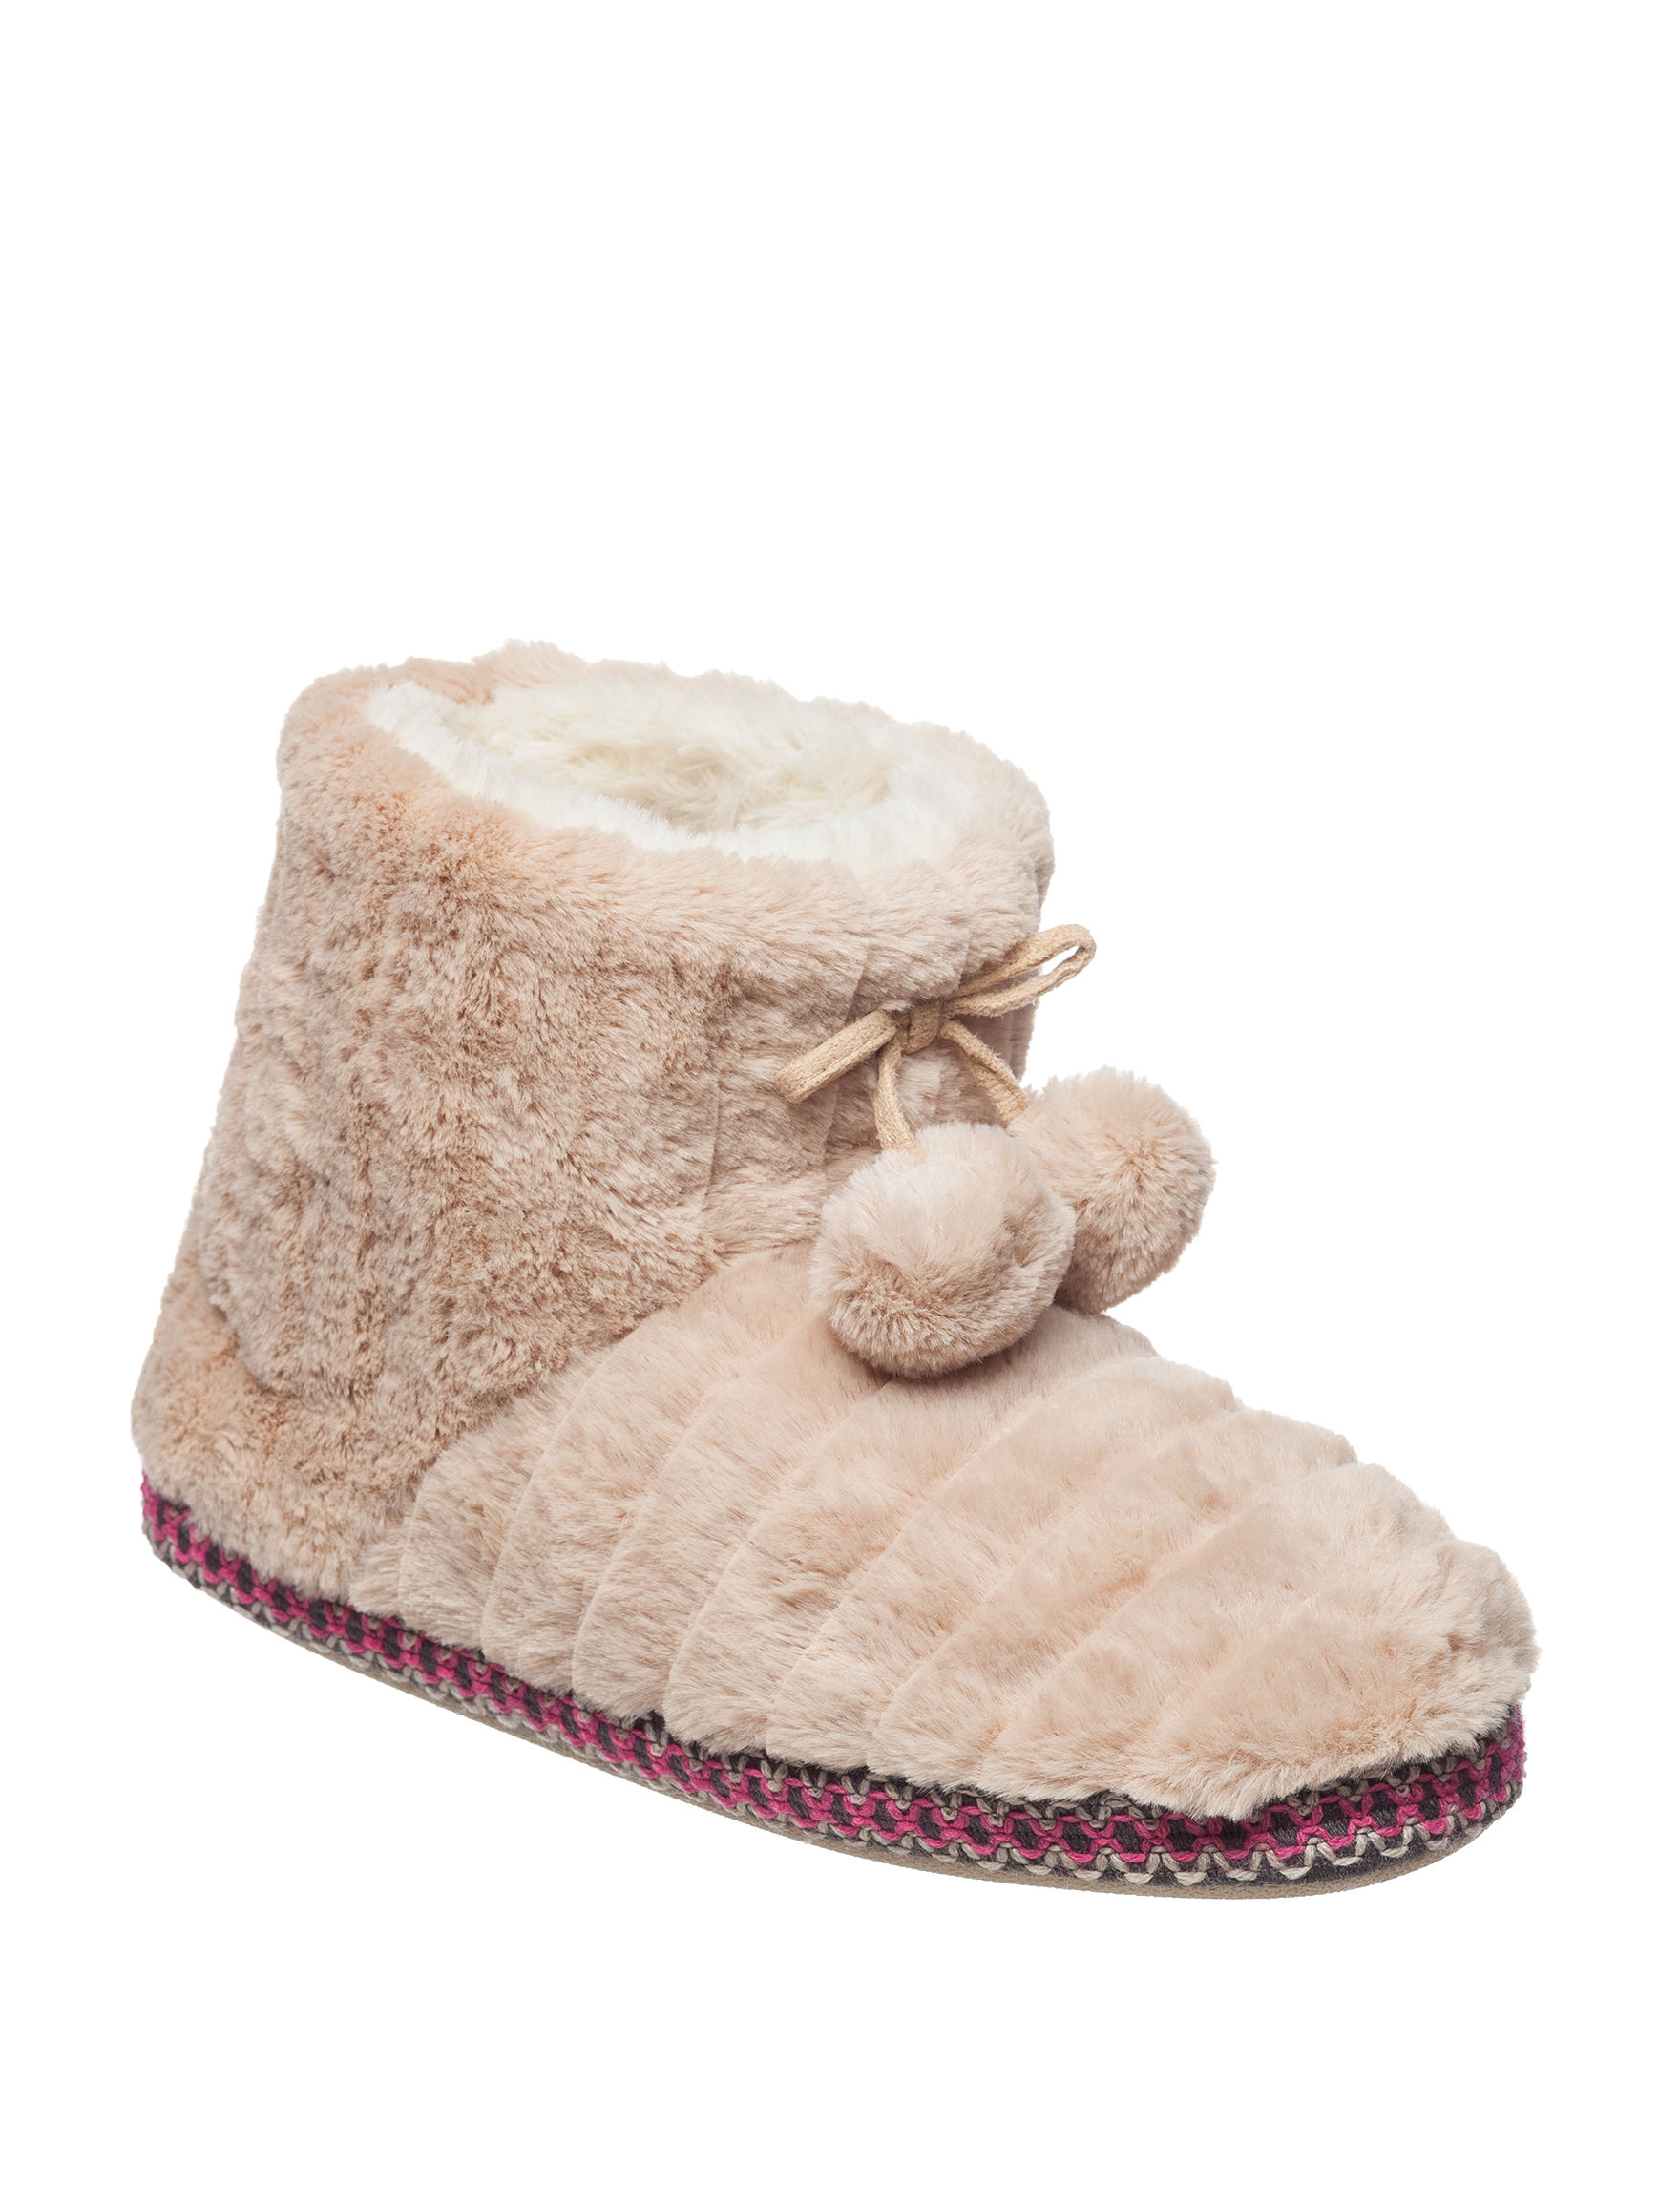 PJ Couture Oatmeal Slipper Boots & Booties